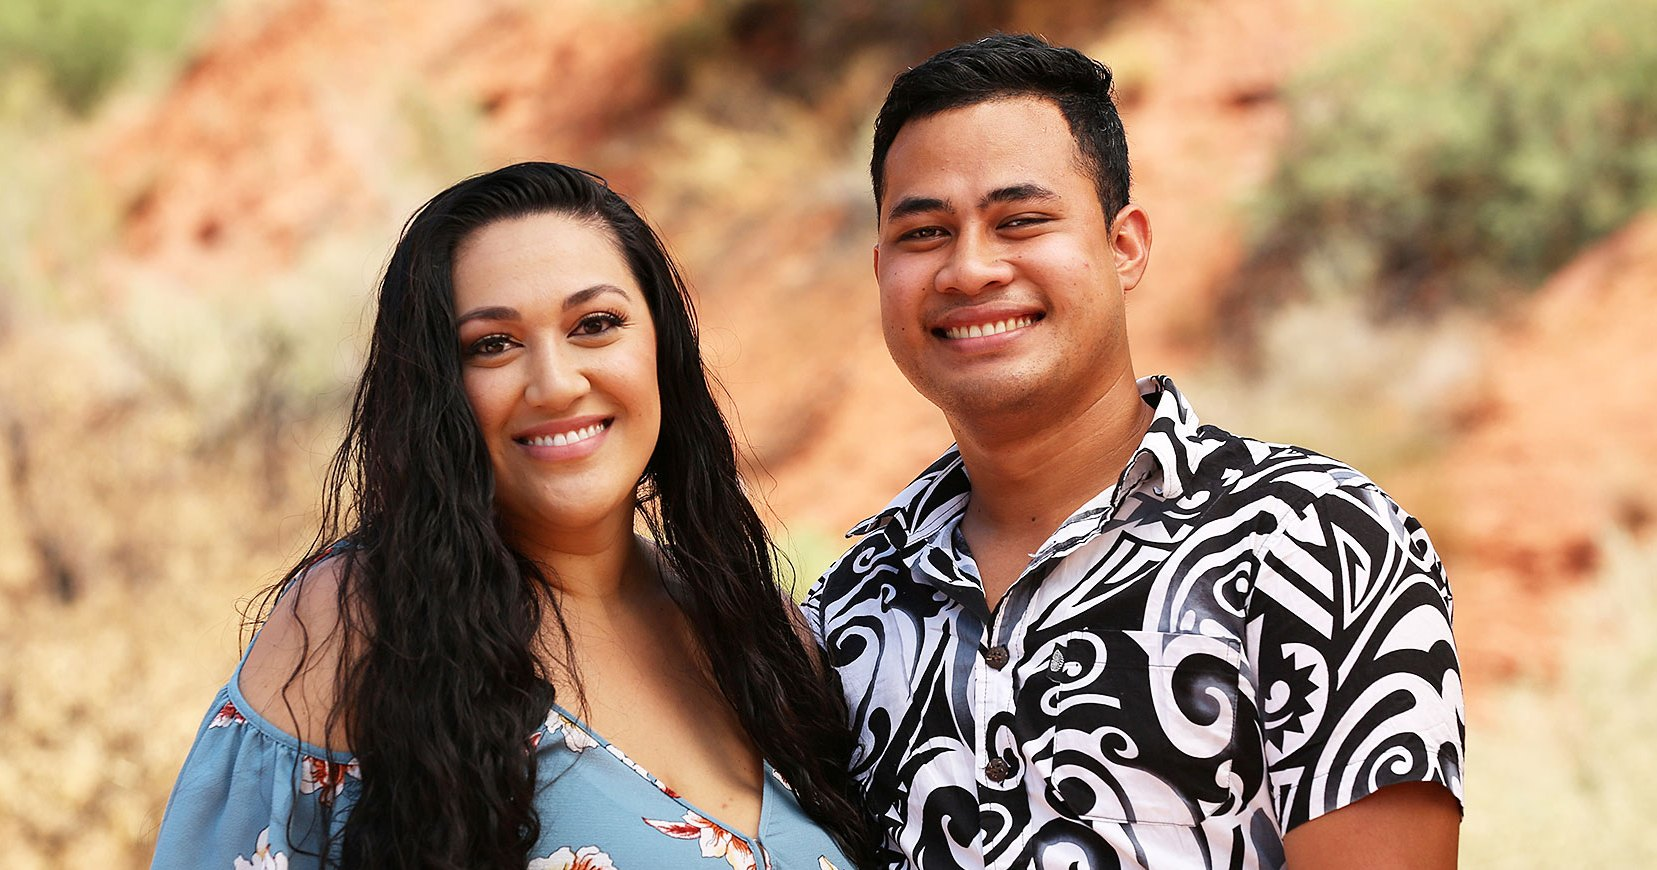 90 Day Fiance's Kalani, Asuelu Welcome Their Second Baby Boy